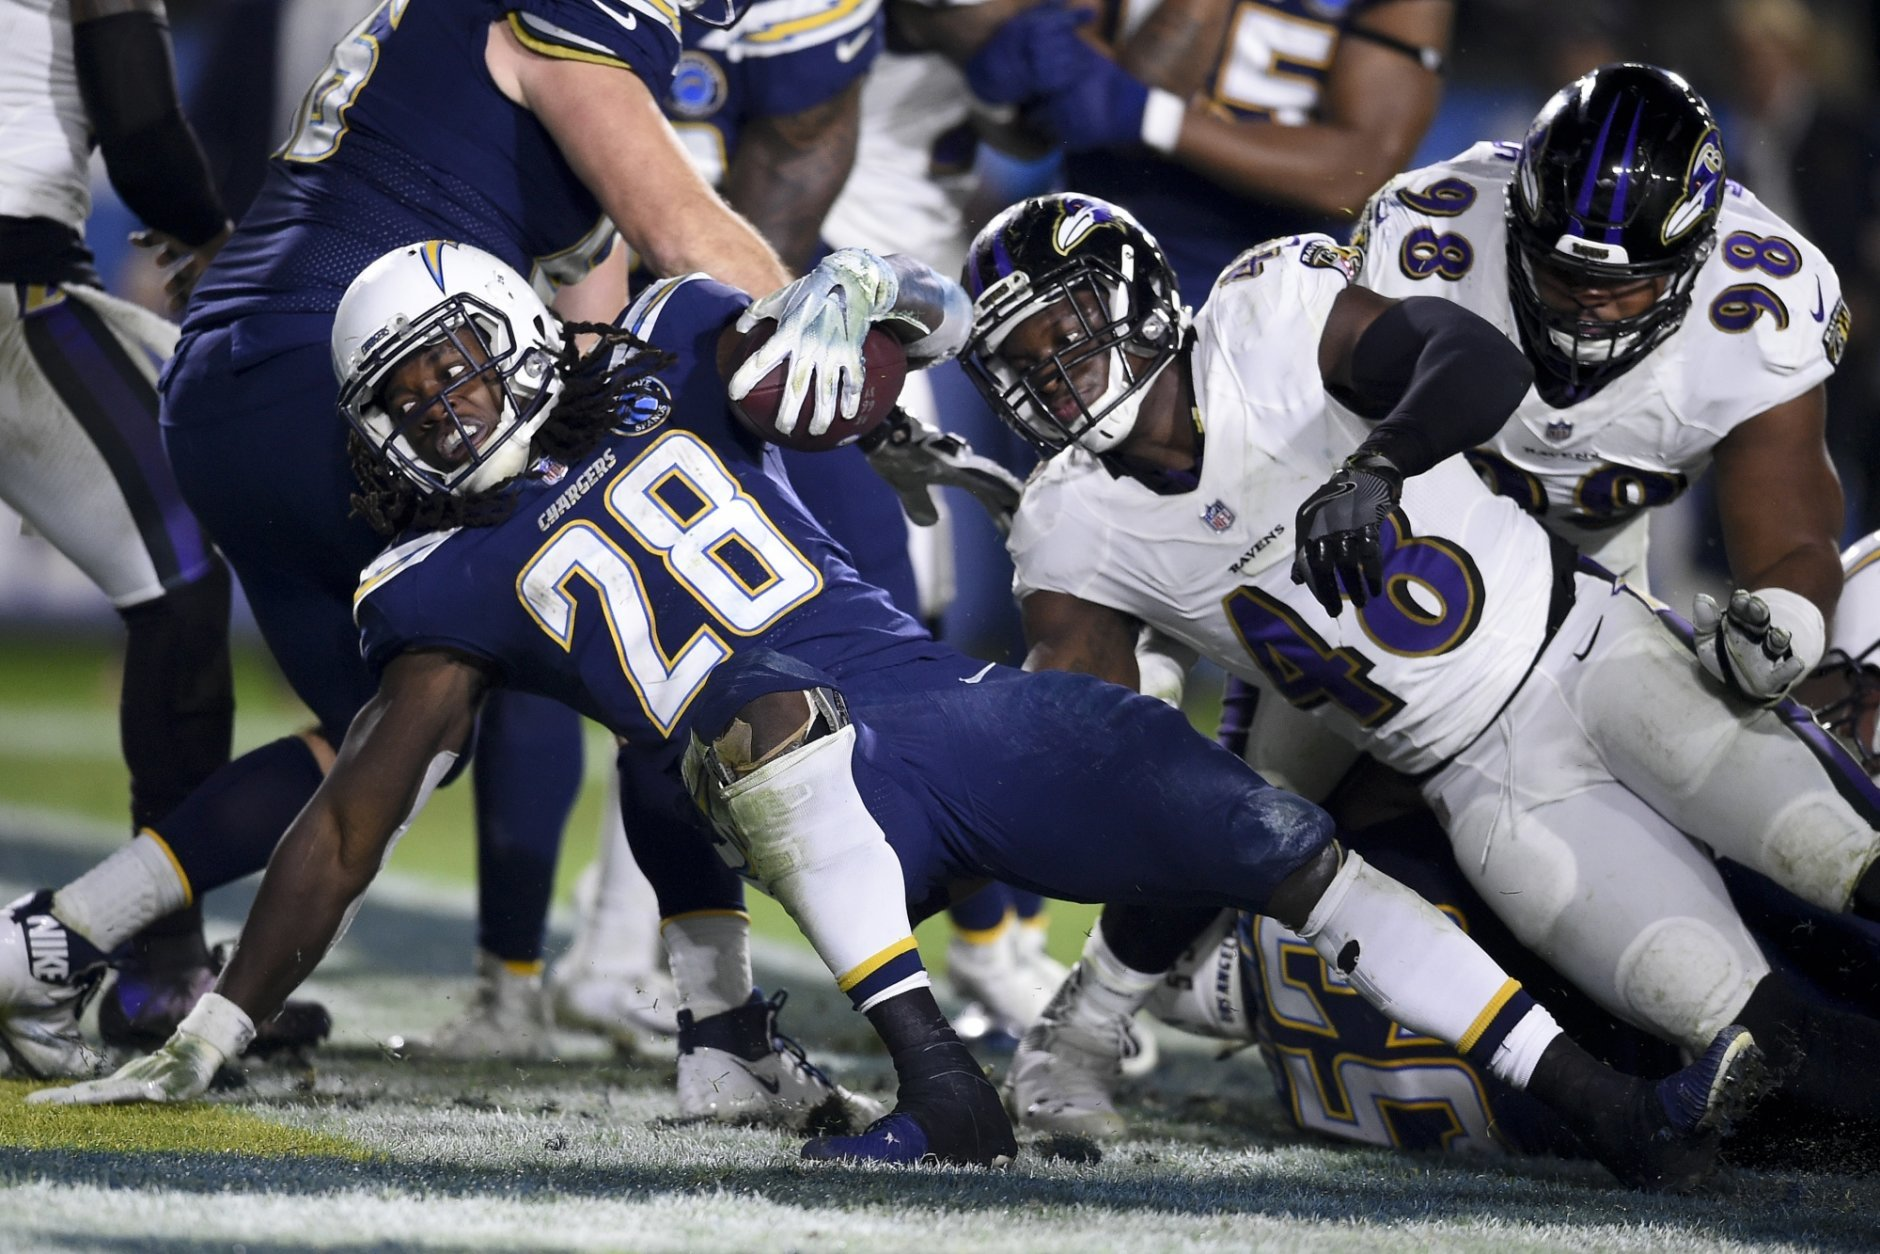 Los Angeles Chargers running back Melvin Gordon scores against the Baltimore Ravens during the second half in an NFL football game Saturday, Dec. 22, 2018, in Carson, Calif. (AP Photo/Kelvin Kuo)